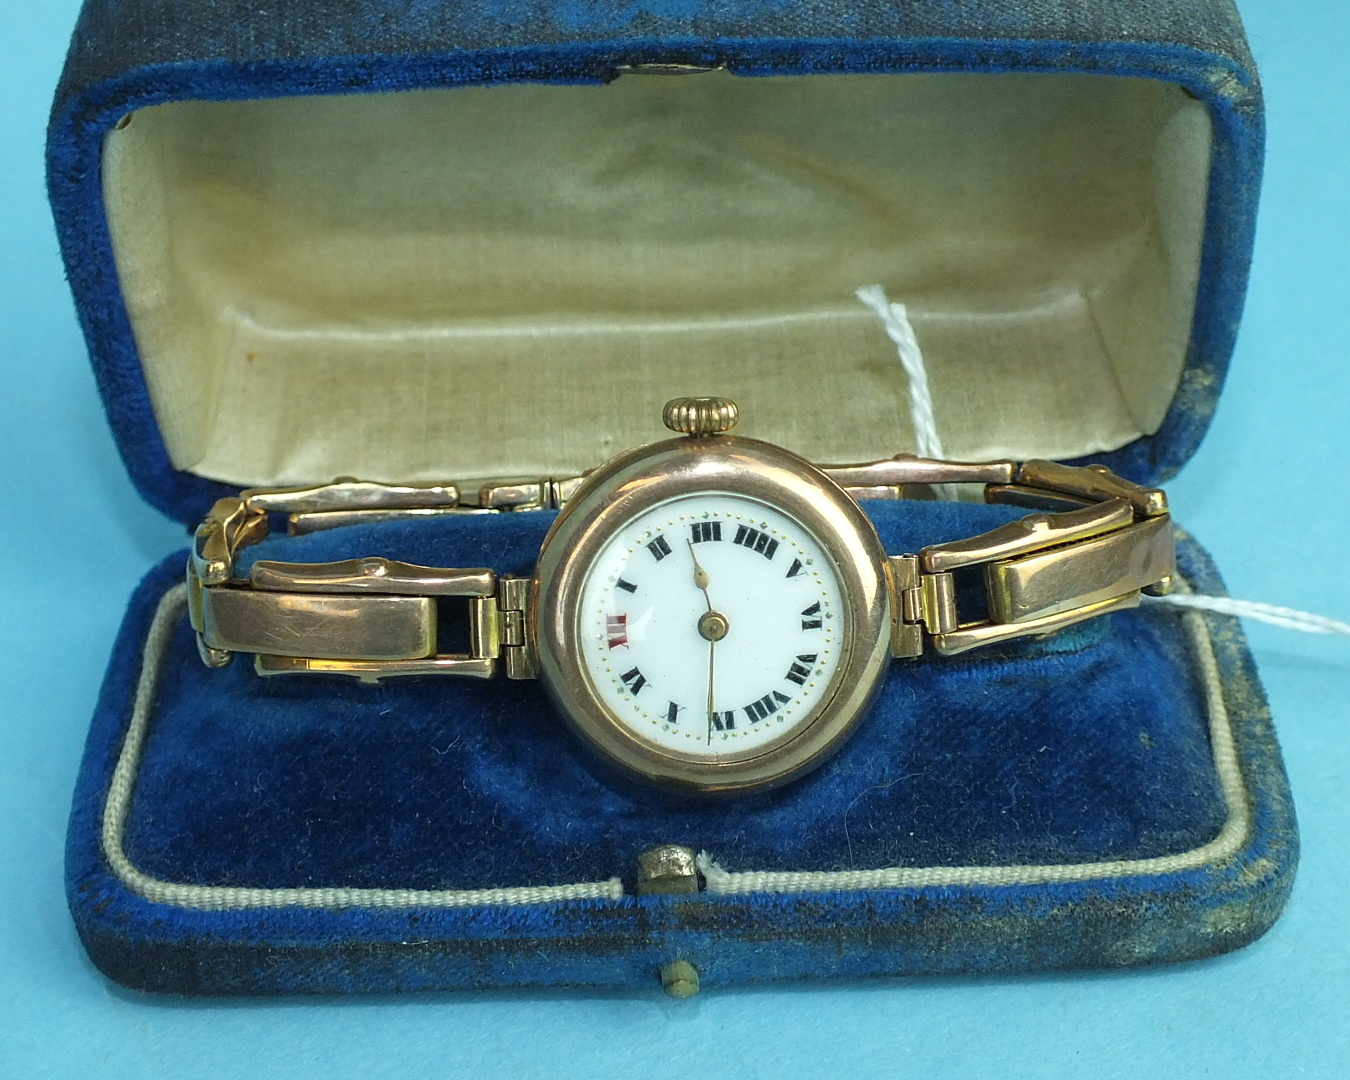 Lot 145 - A ladies 9ct-gold-cased wrist watch with gold expanding bracelet, total weight 28.6g, boxed.